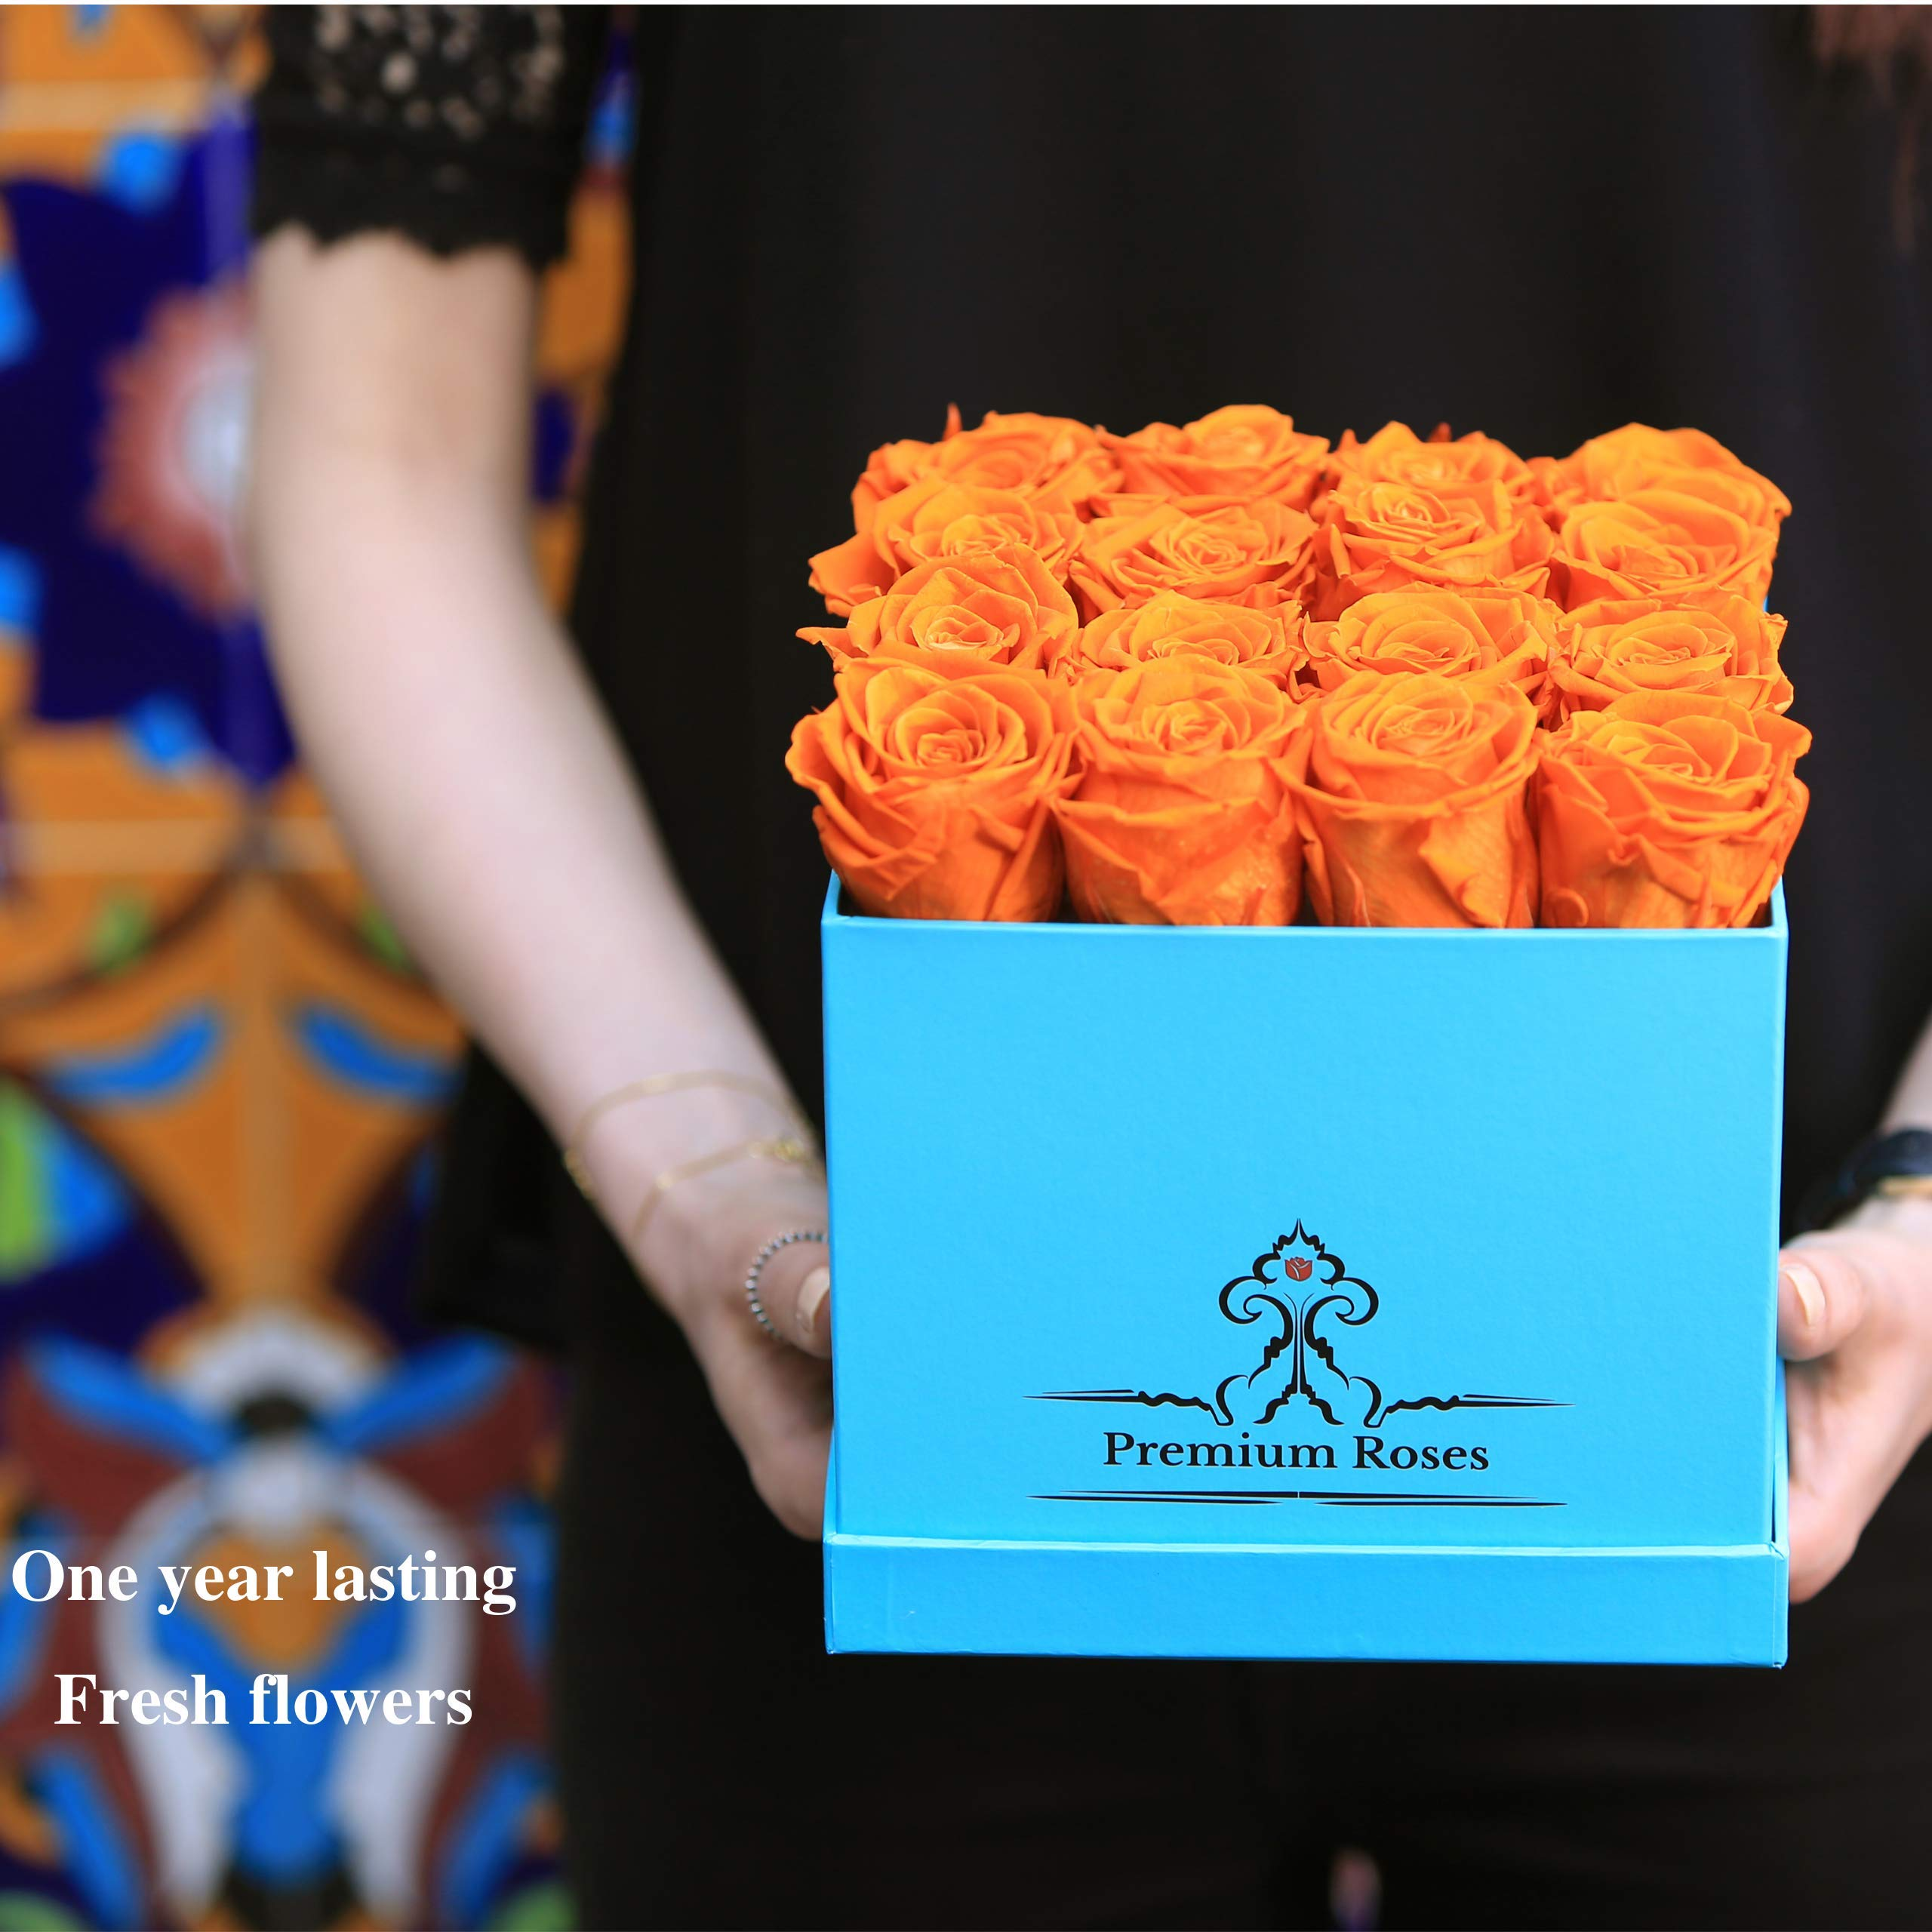 Premium Roses | Model Turquoise| Real Roses That Last 365 Days | Roses in a Box| Fresh Flowers (Blue Box, Medium) by Premium Roses (Image #3)